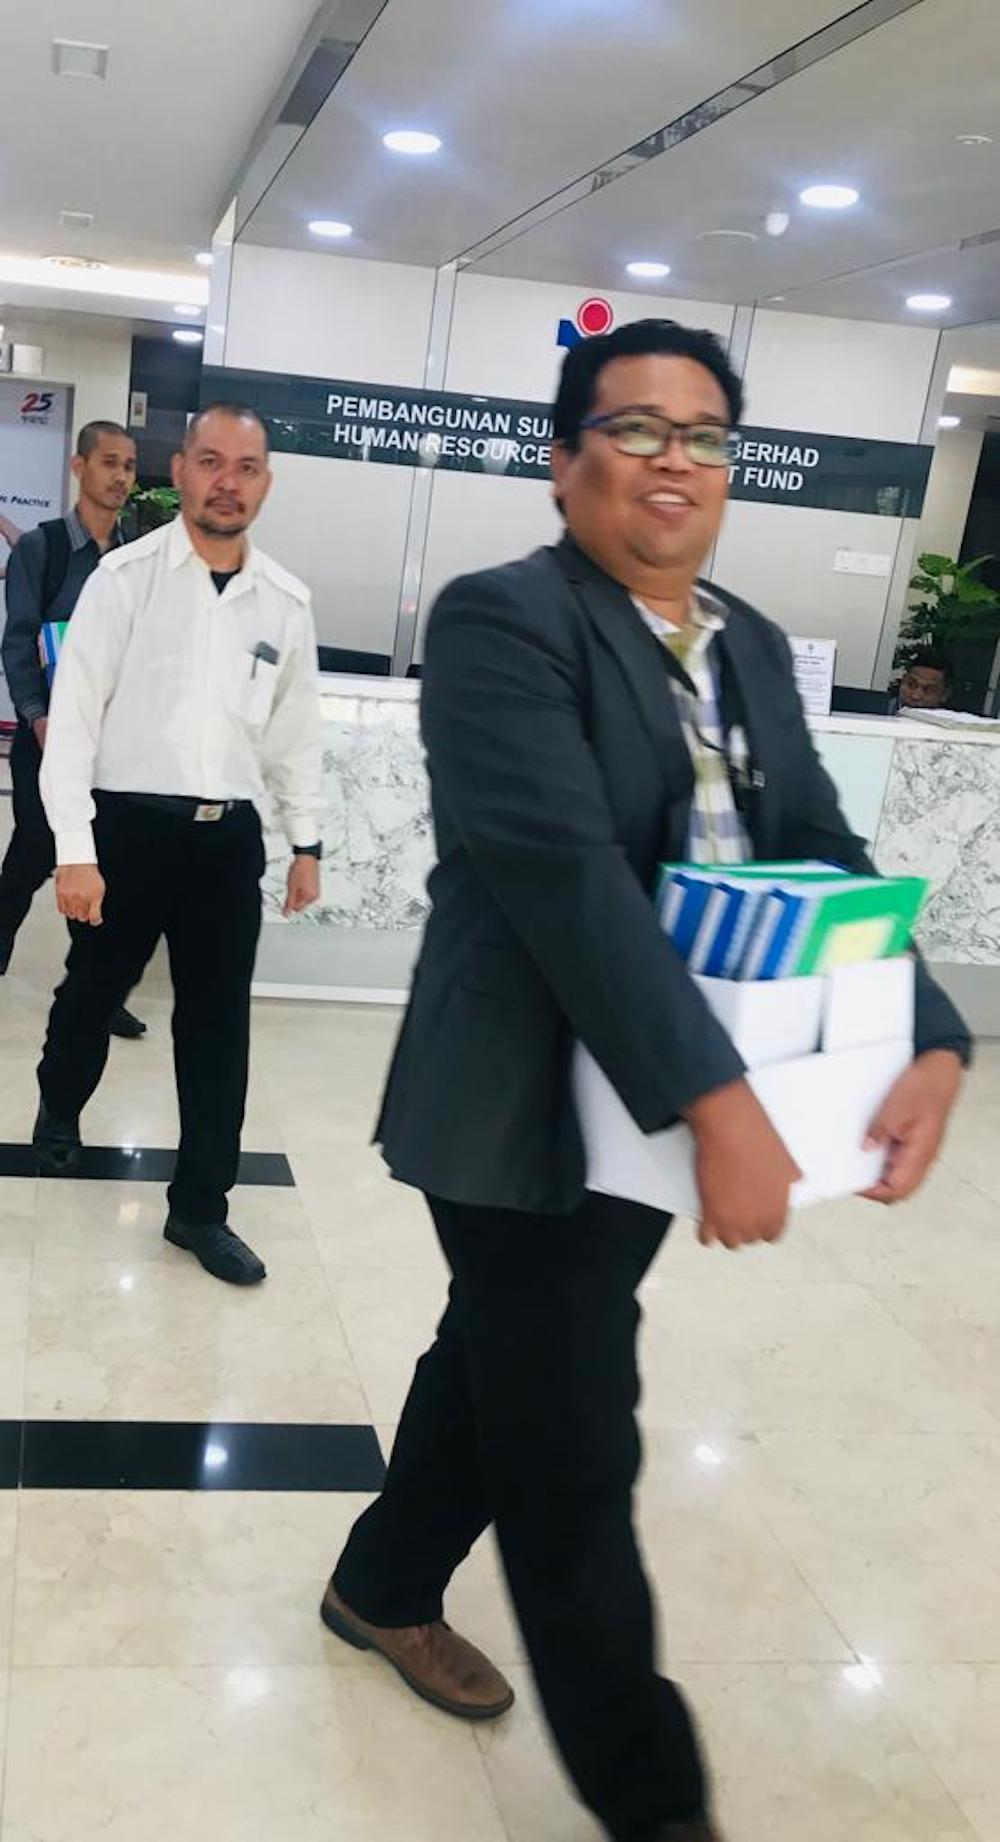 MACC officers spotted removing several boxes of files from the HRDF office in Damansara Heights, Kuala Lumpur starting Monday, April 2, 2019.